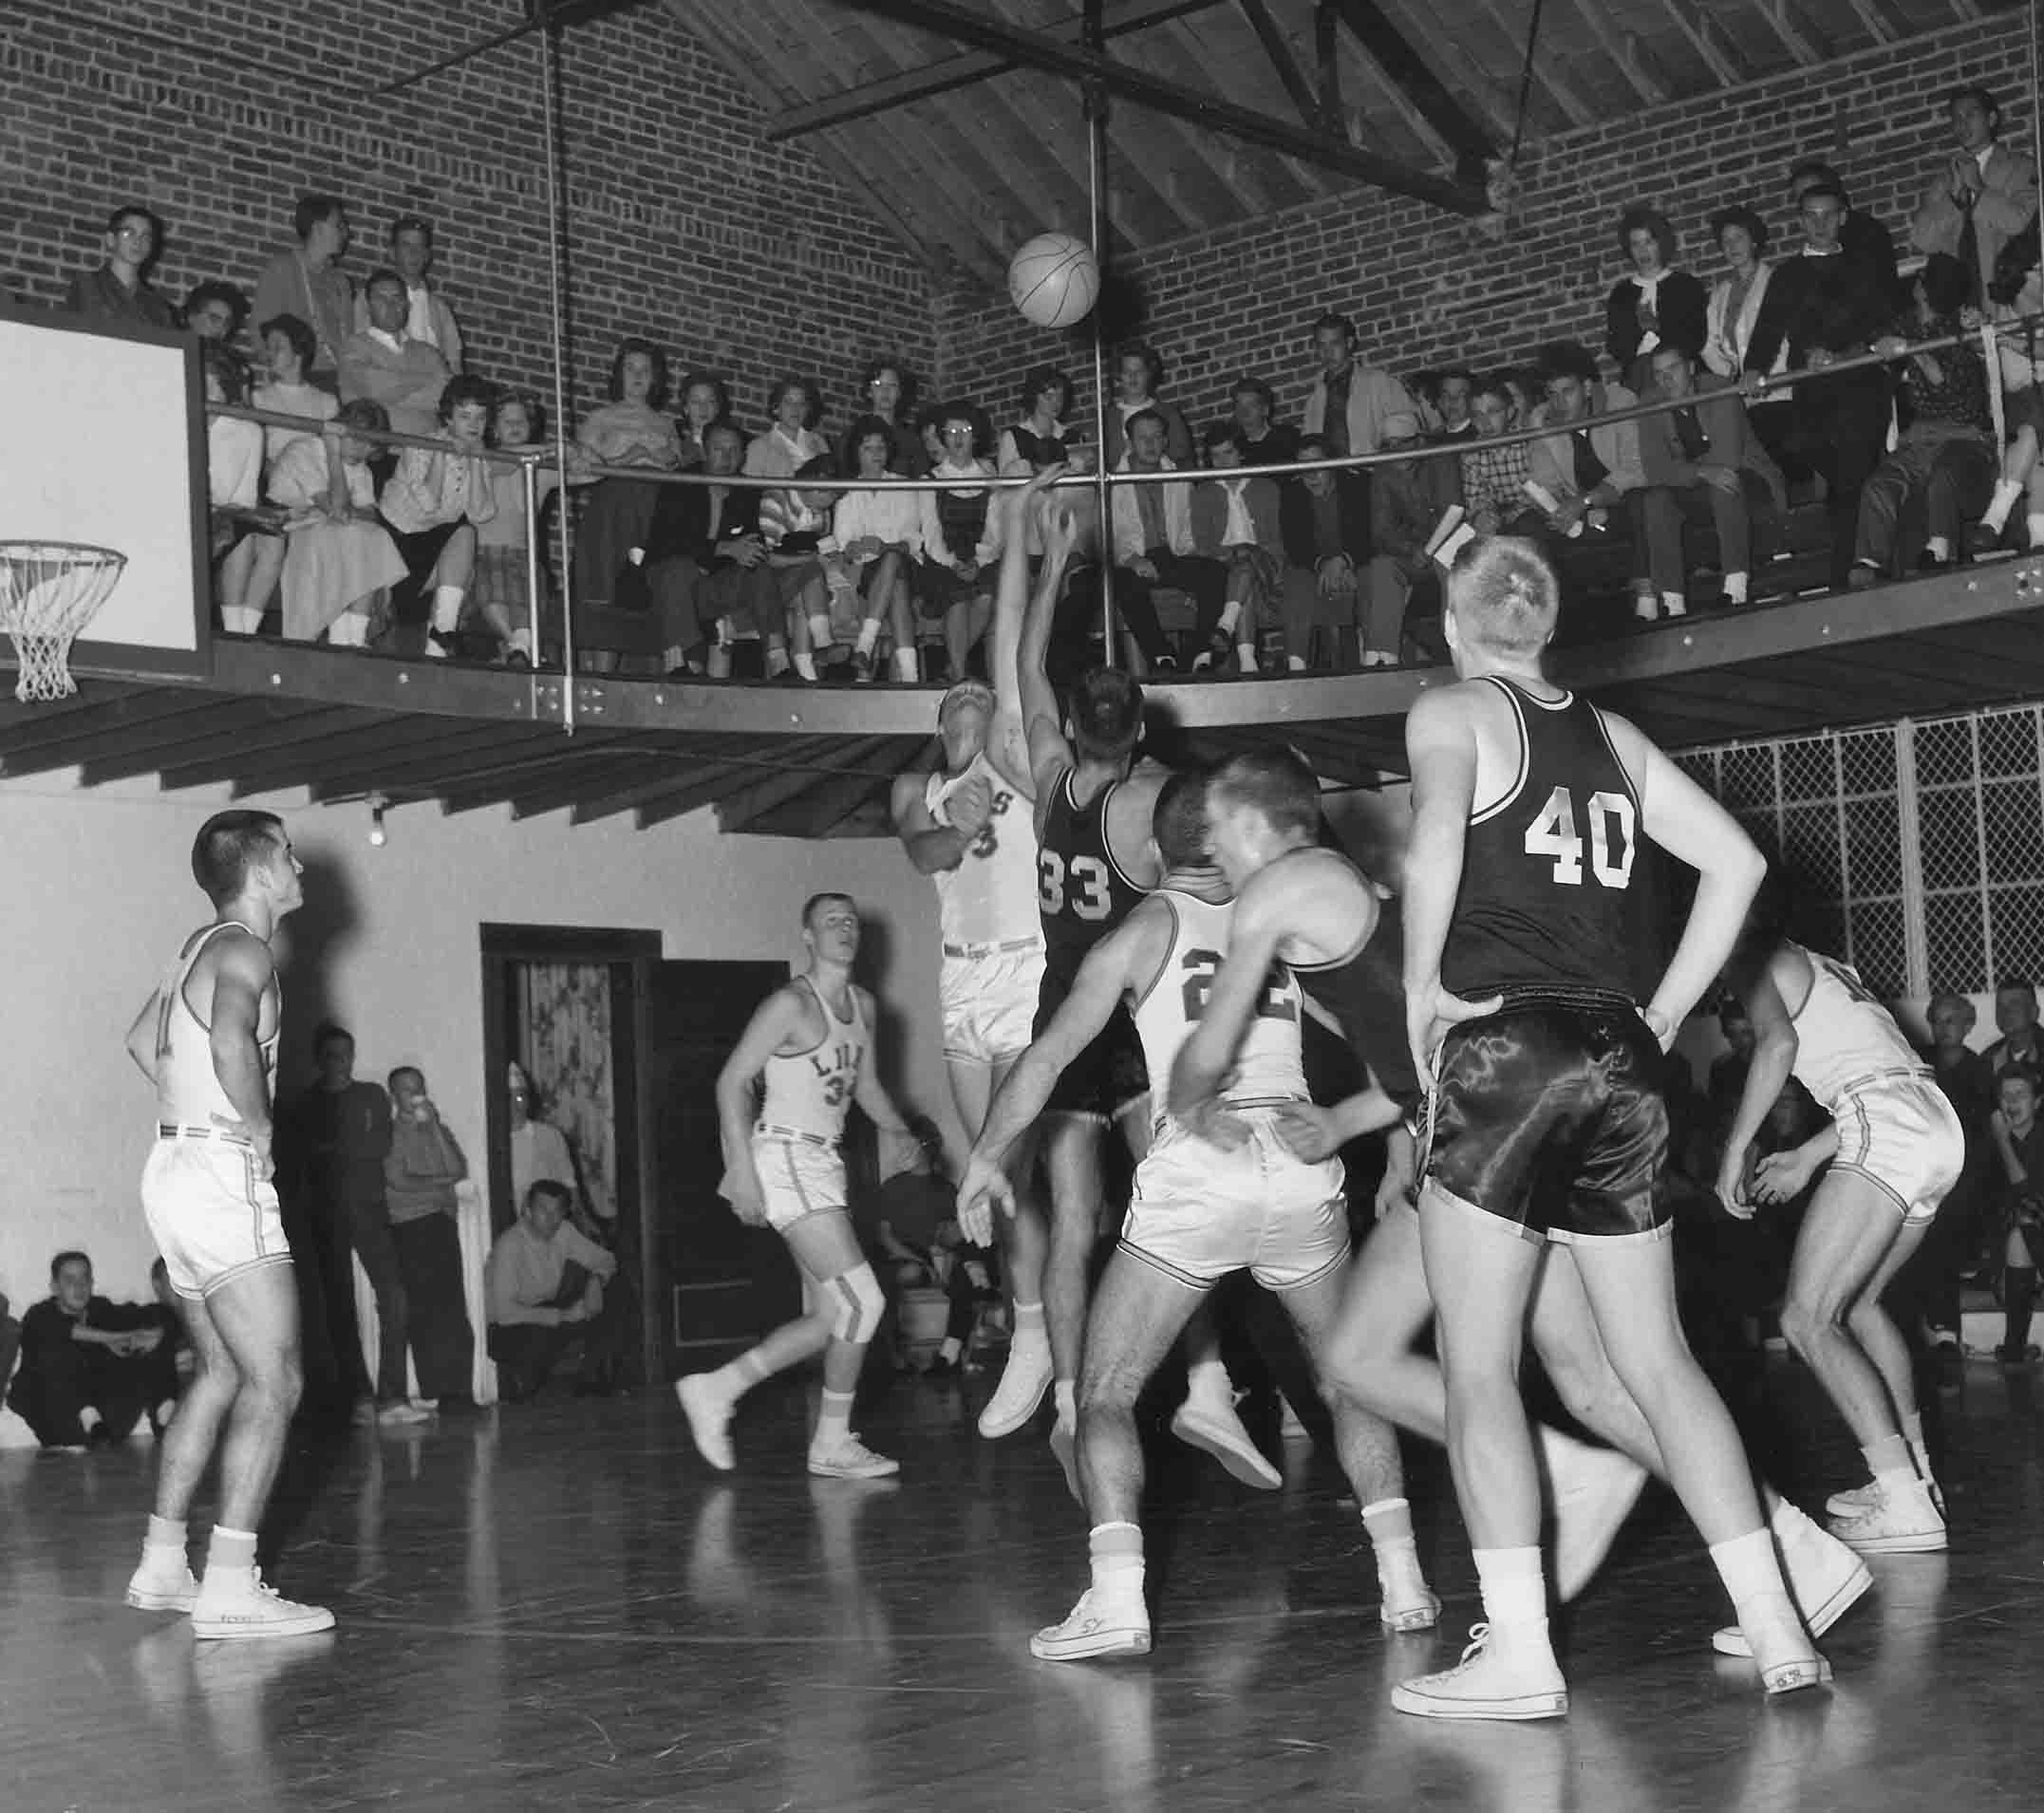 Men's basketball game taking place in McConnell Gymnasium